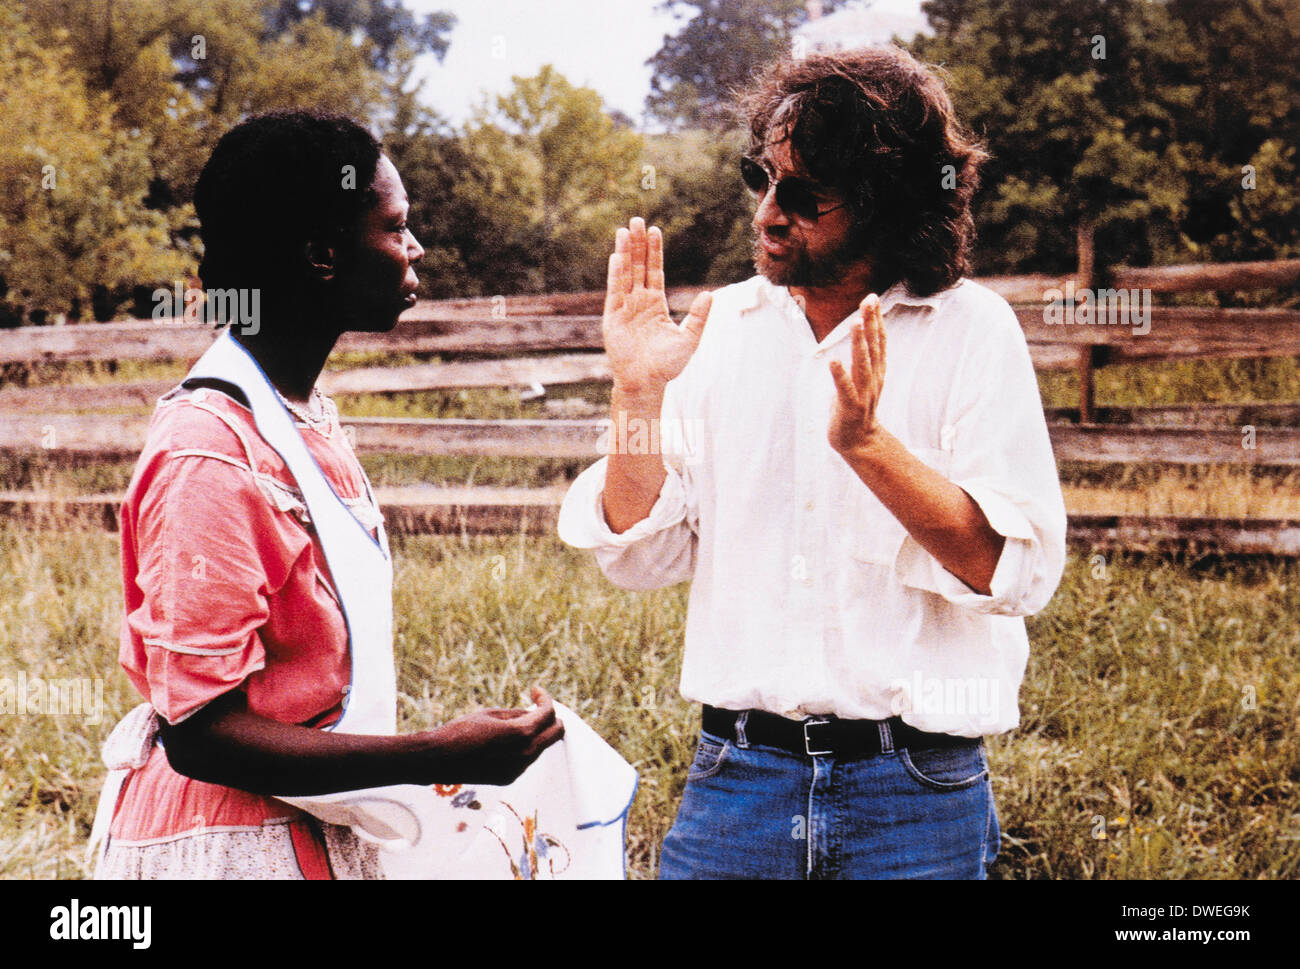 Steven Spielberg and Whoopi Goldberg, on-set of the Film,'The Color Purple', 1985 - Stock Image